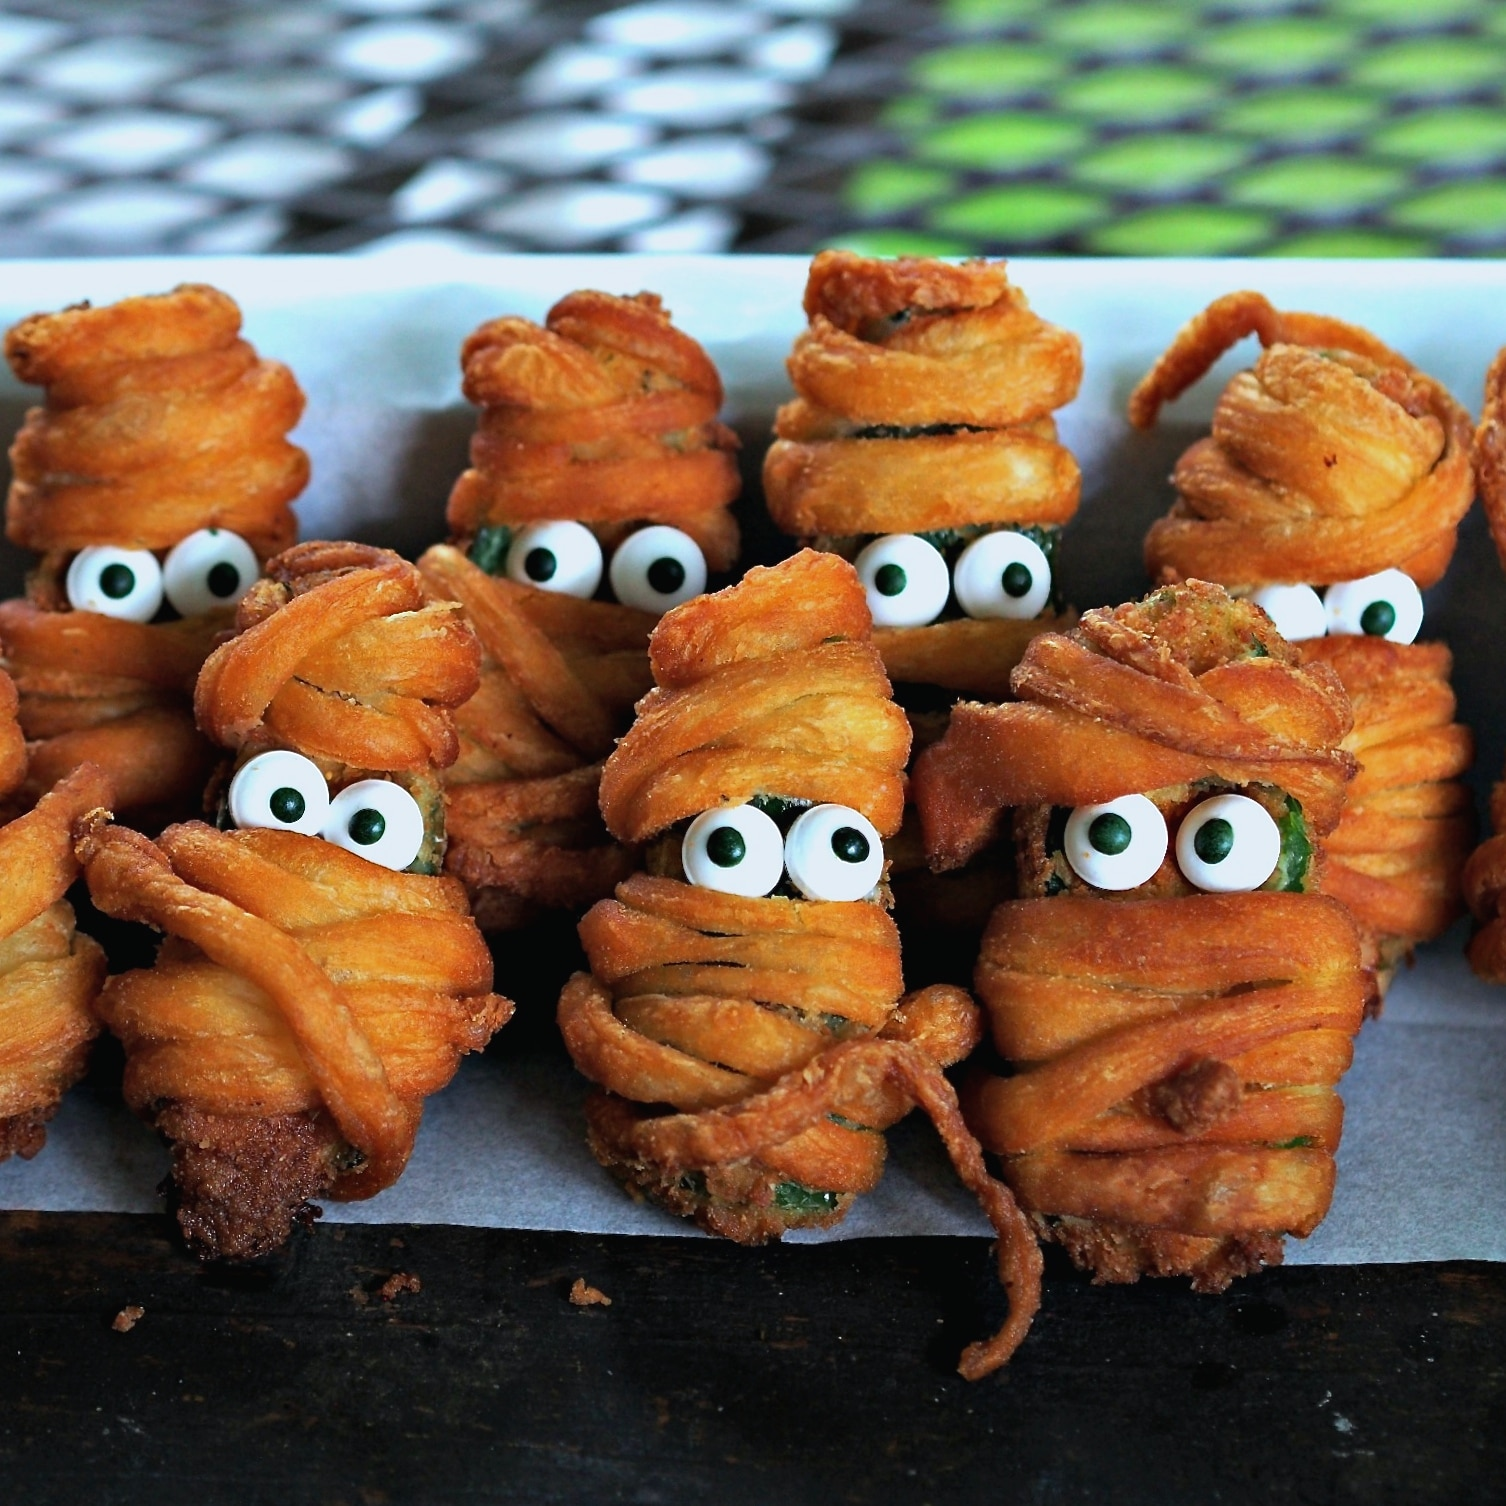 Jalapeno Popper Mummies - a little bit hot, a little bit sweet and a lot of fun. Jalapeno Popper Mummies are the perfect Halloween treat.